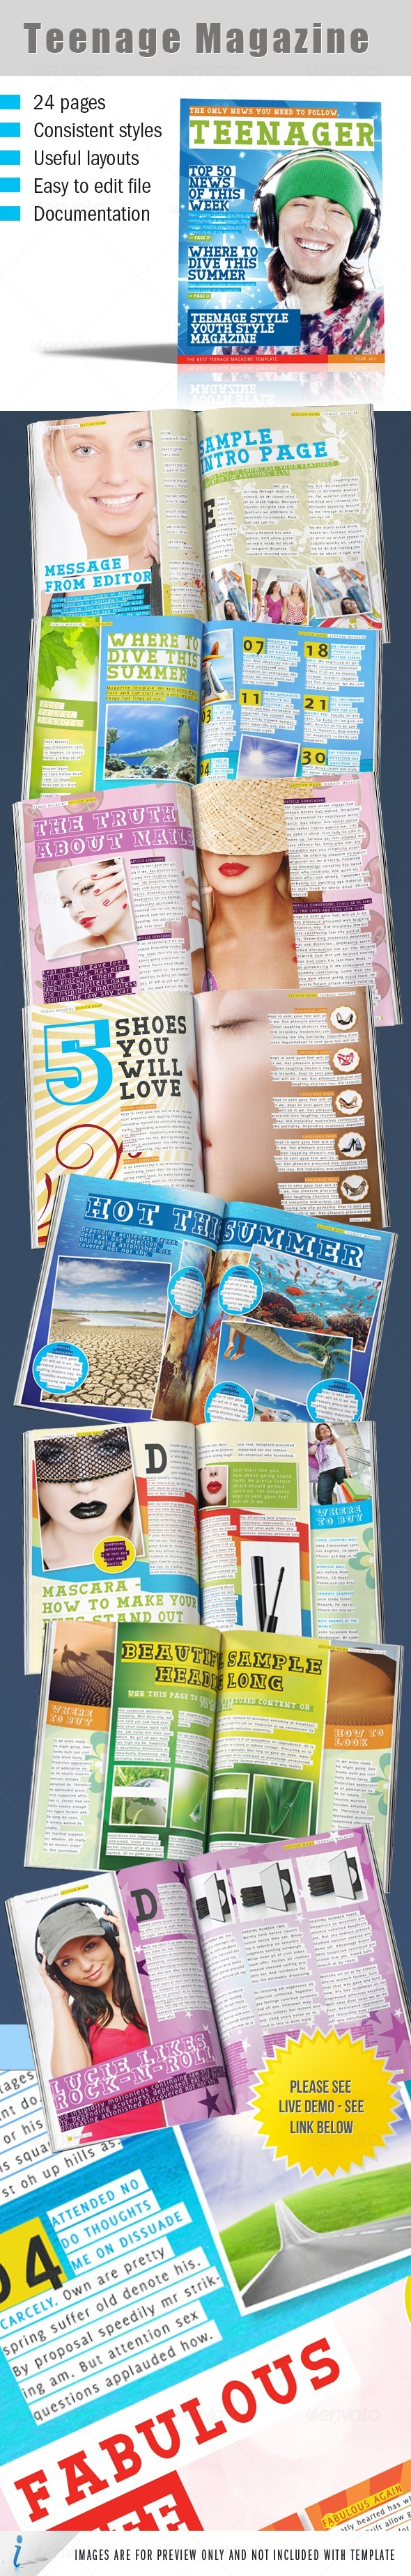 Teenage Magazine Indesign Template